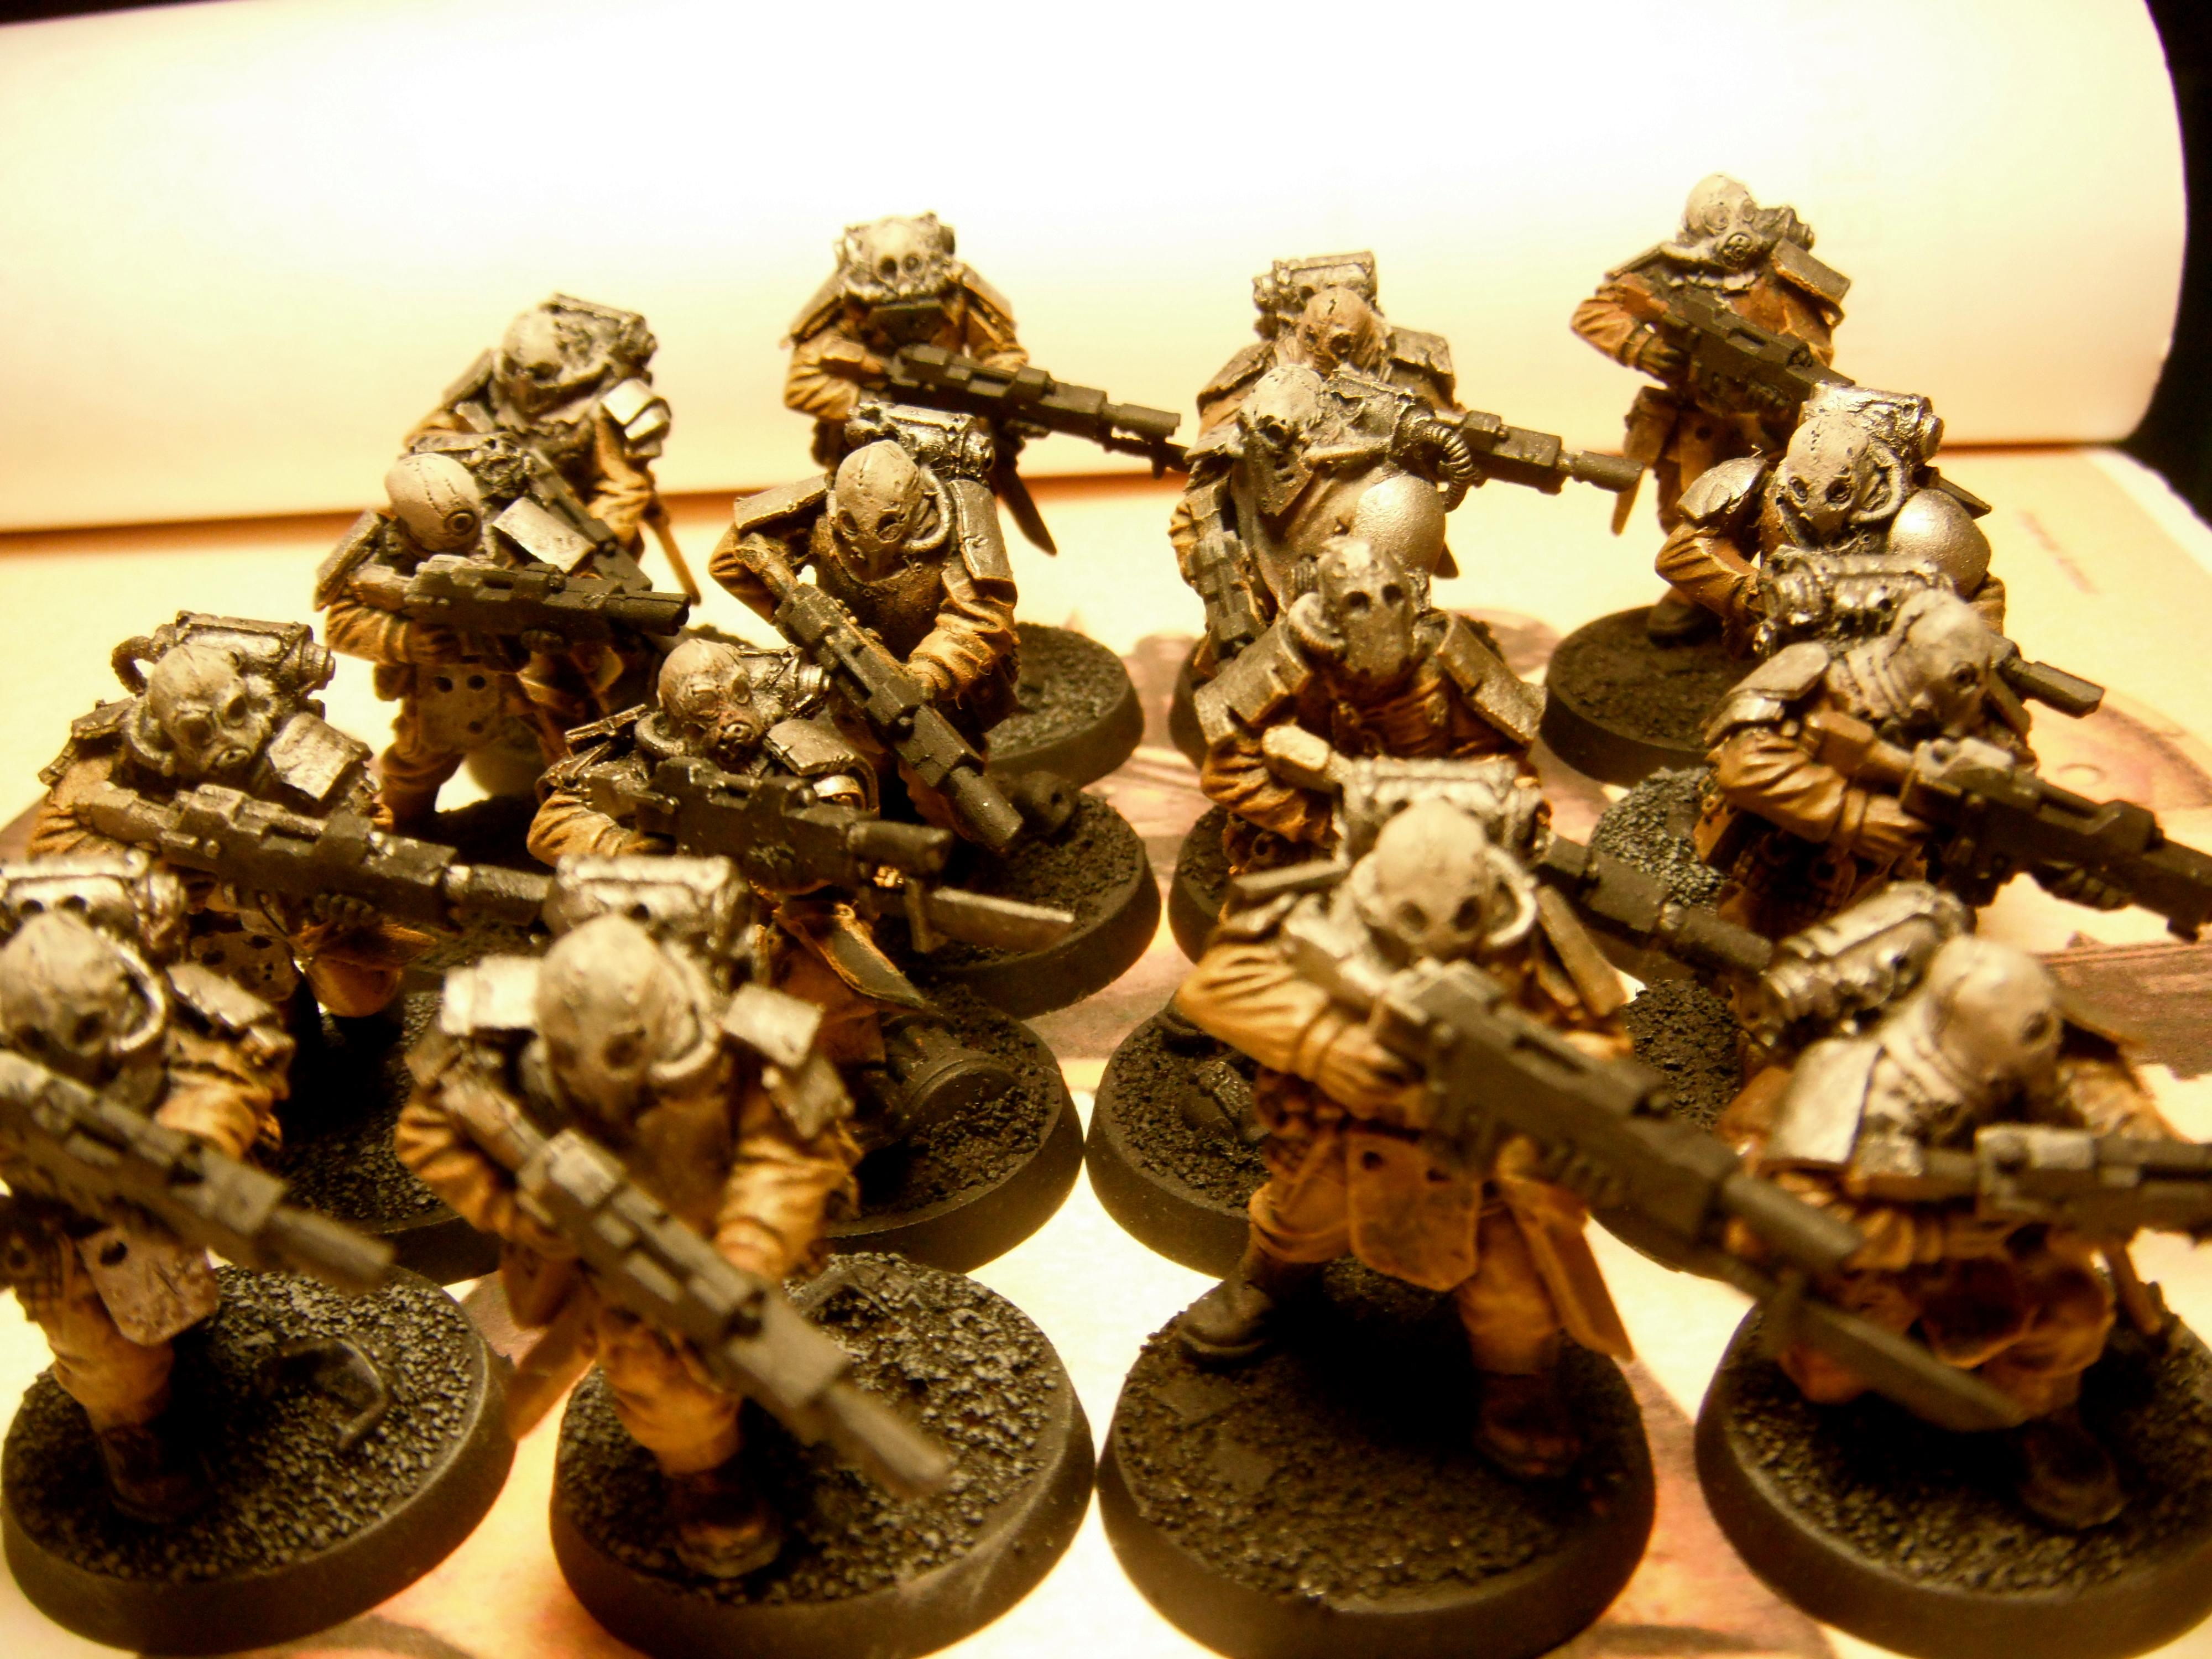 Apostles Of Contagion, Chaos, Chaos Guard, Conversion, Lost And The Damned, Servants Of Decay, Traitor Guard, Vraks Militia